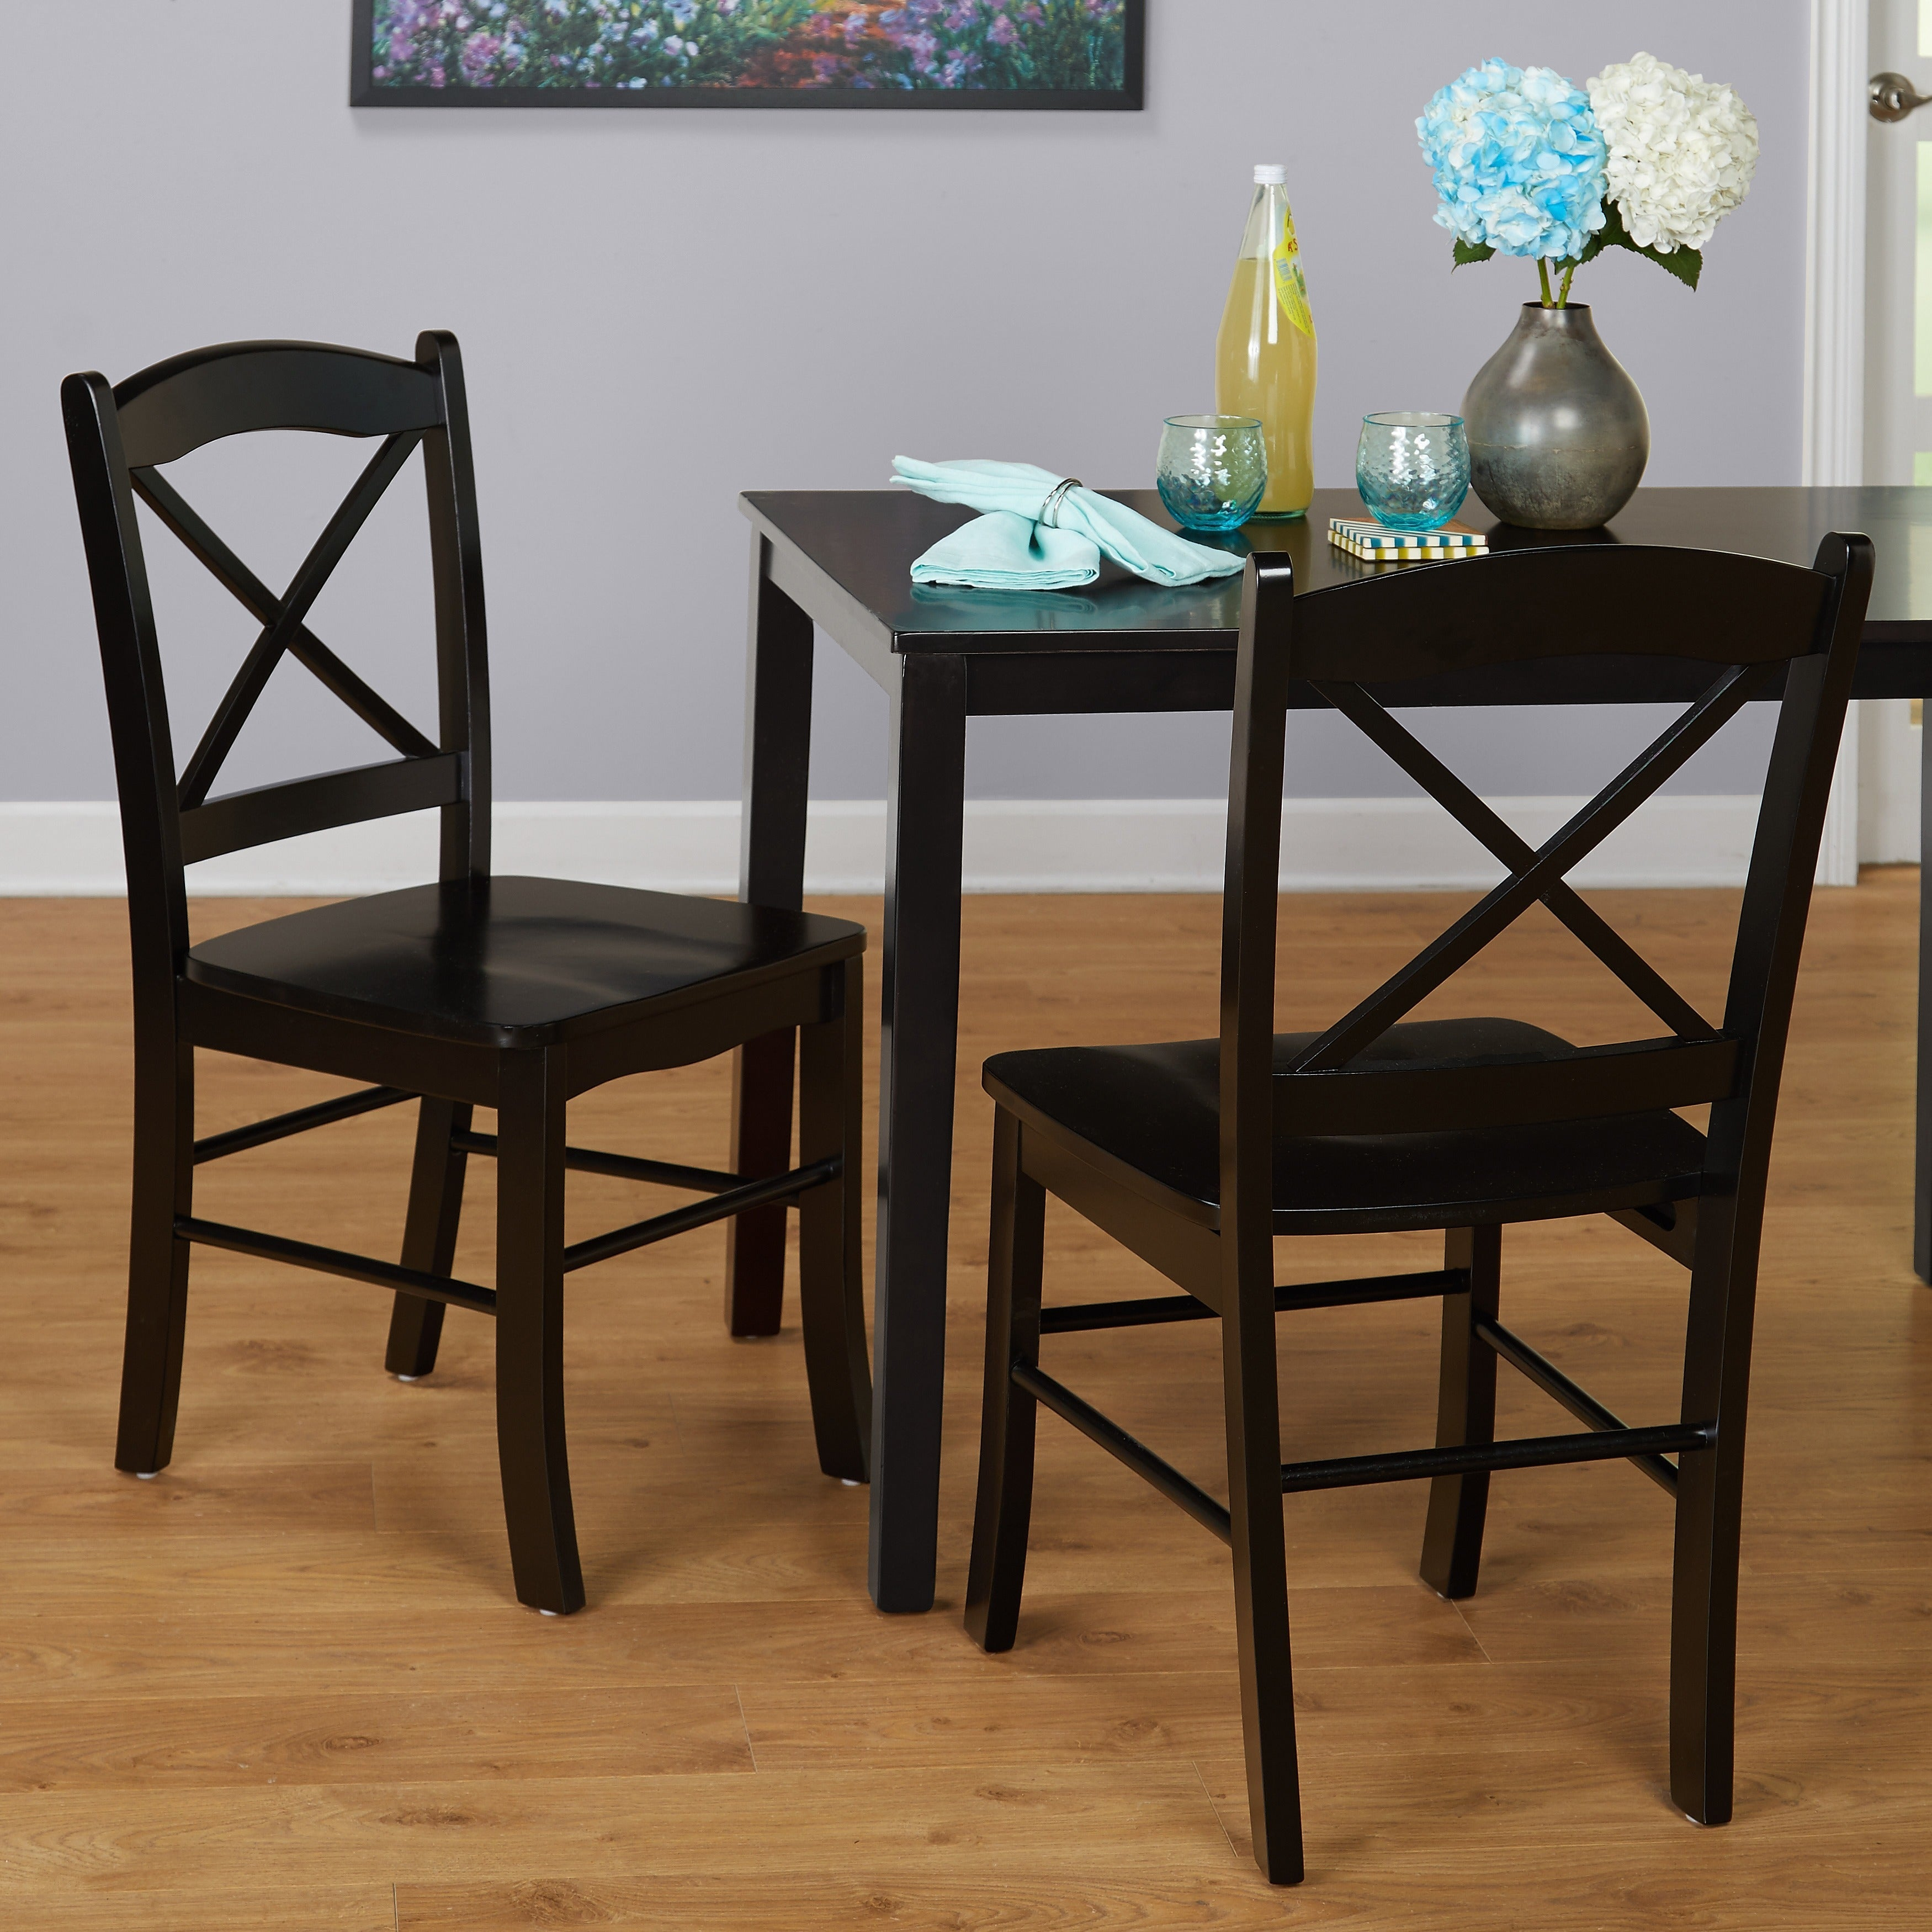 from garden by diningchair architonic embient b cottage dining chairs chair kryss en product bjoernhulten skargaarden